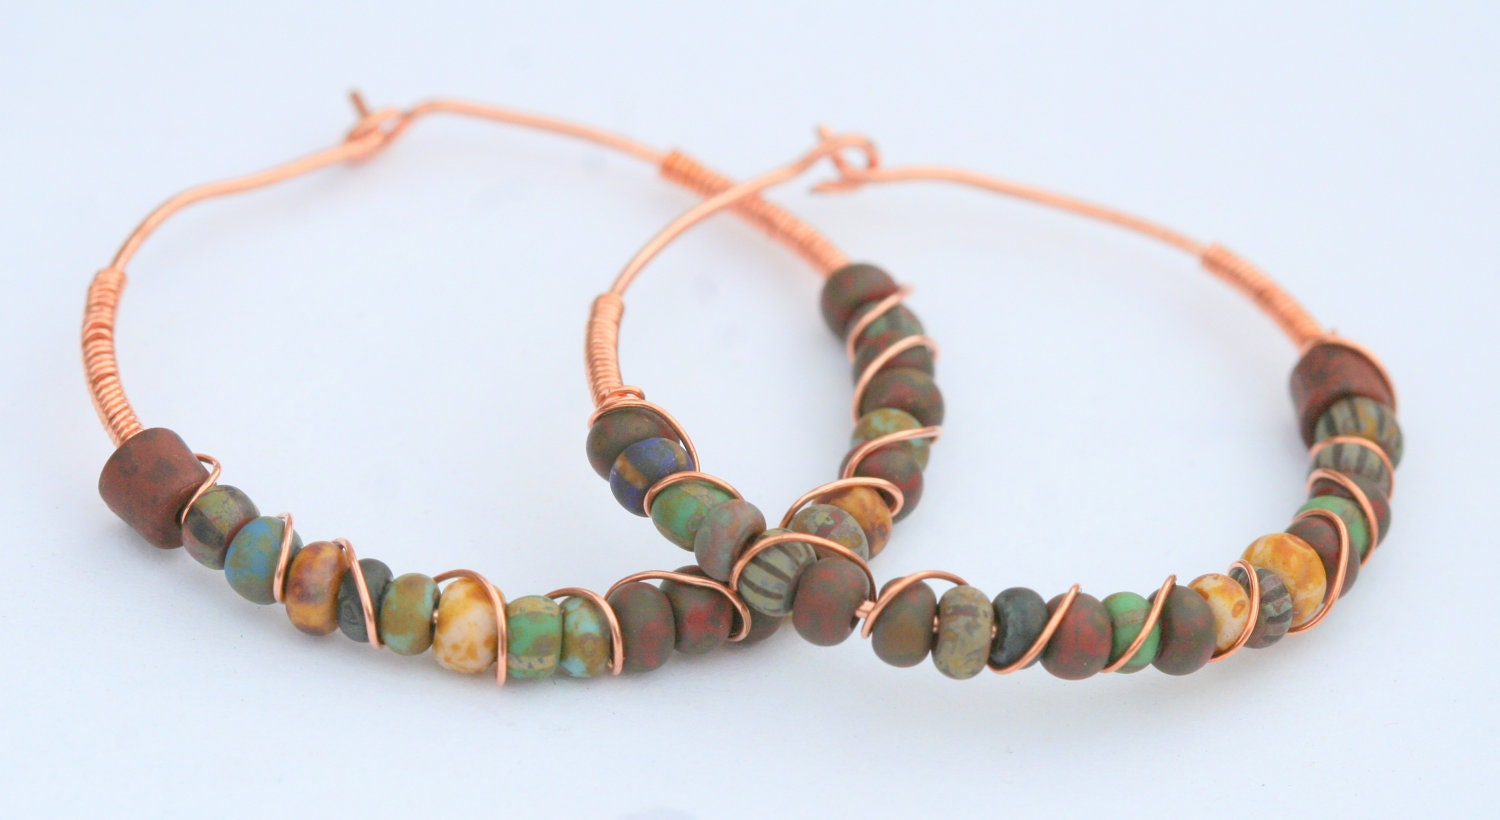 Copper Wire Wrapped Hoop Earrings with Glass Beads - LesleyPridgen